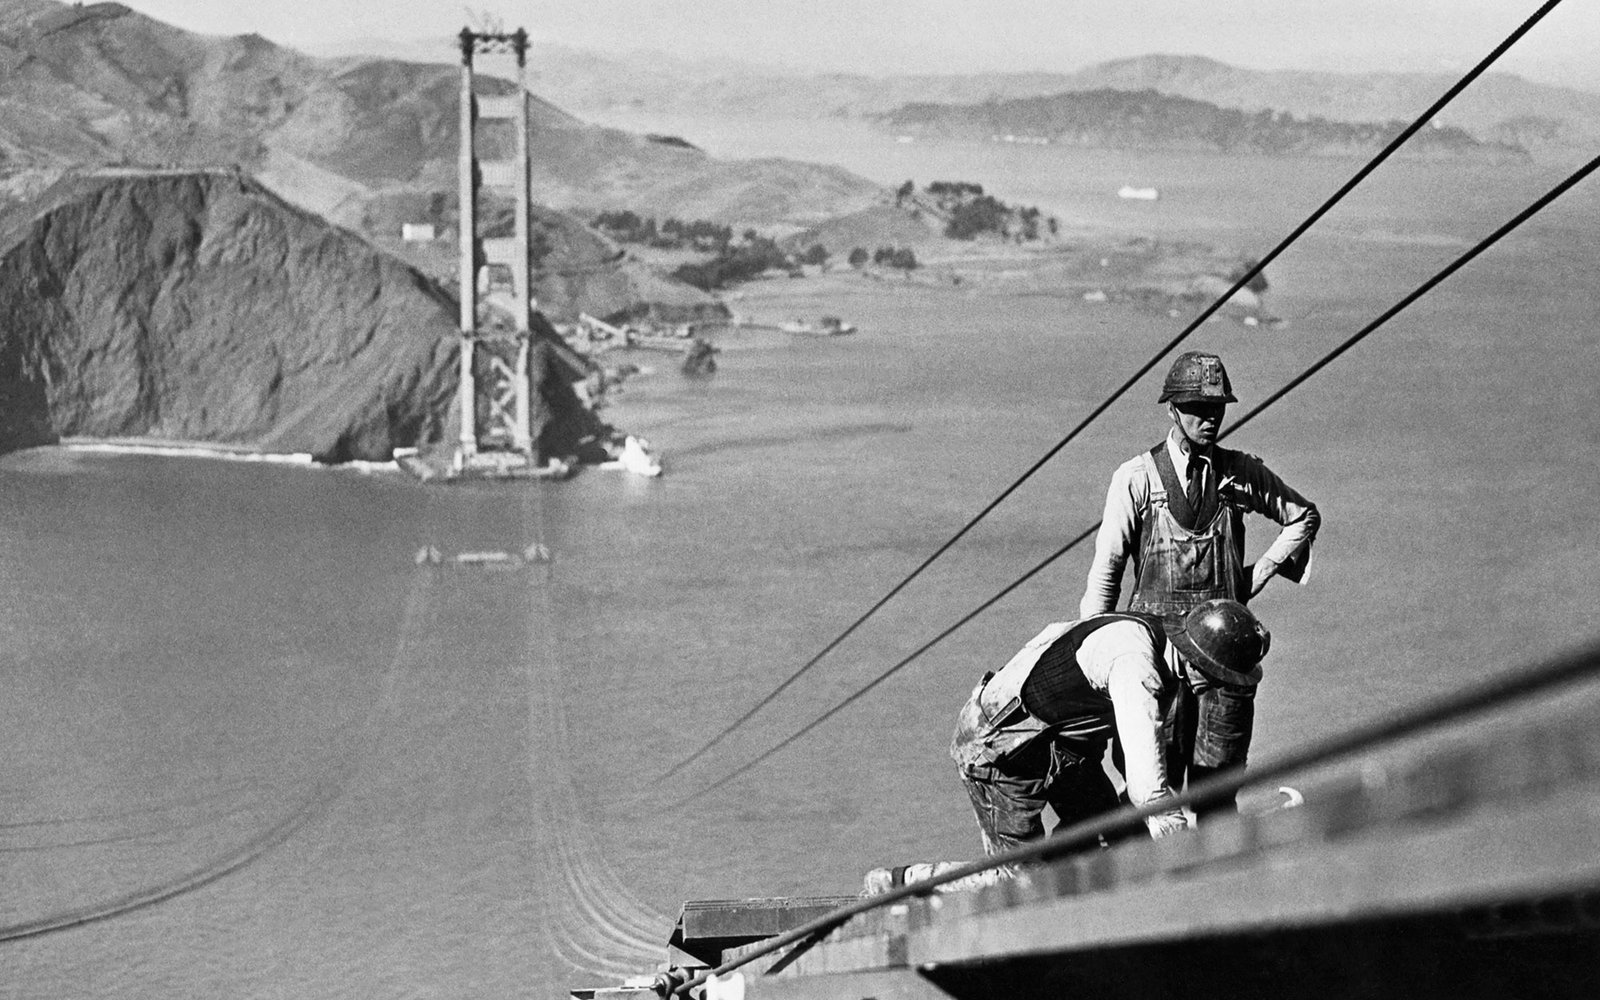 83 Years Ago Today Construction On The Golden Gate Bridge